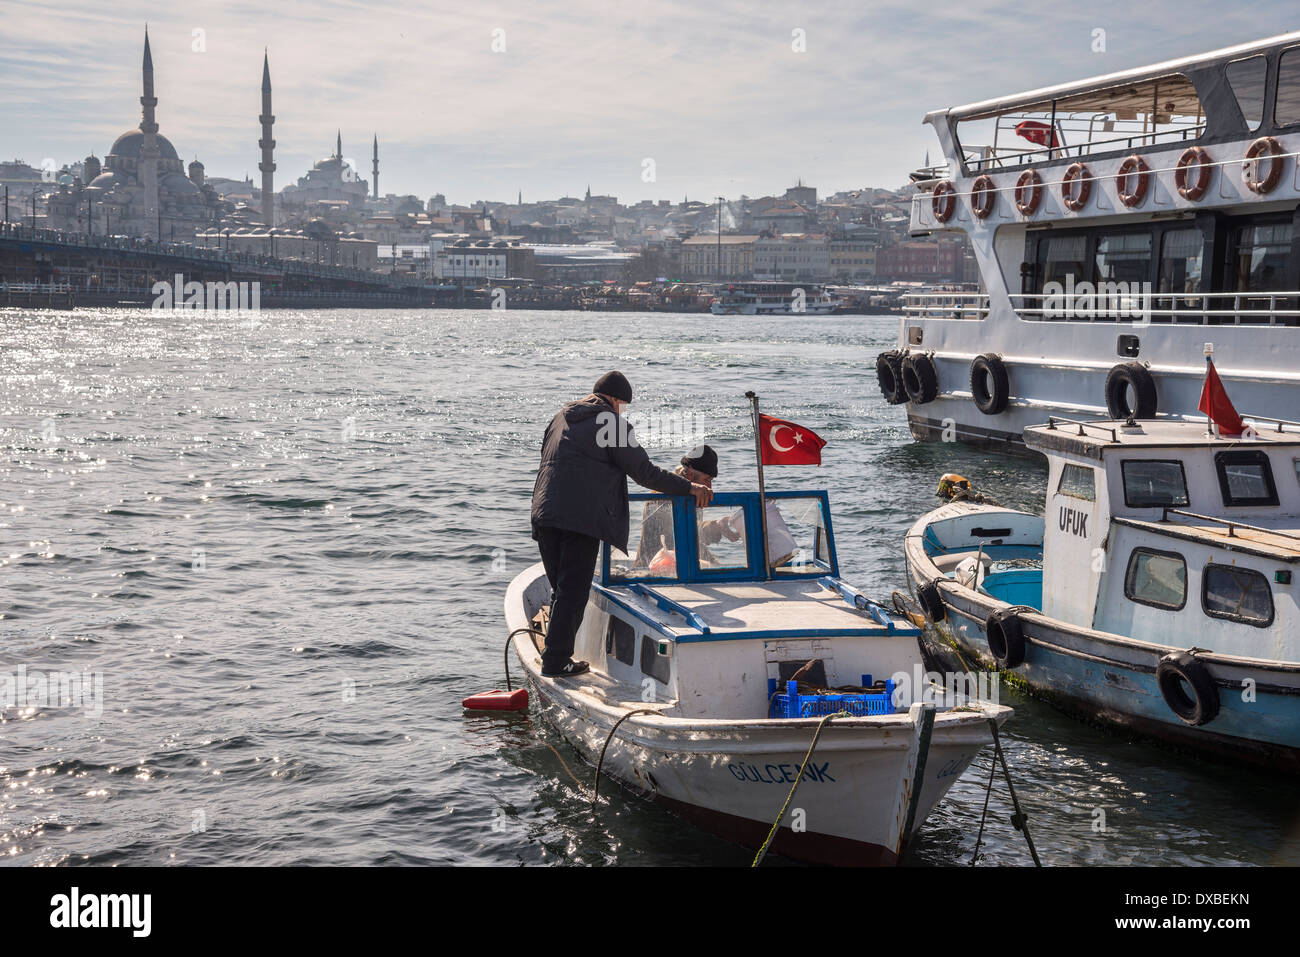 Boatmen on Karakoy waterfront looking across the Golden Horn toward the Yeni mosque at Eminonu and the Istanbul skyline, Turkey. - Stock Image